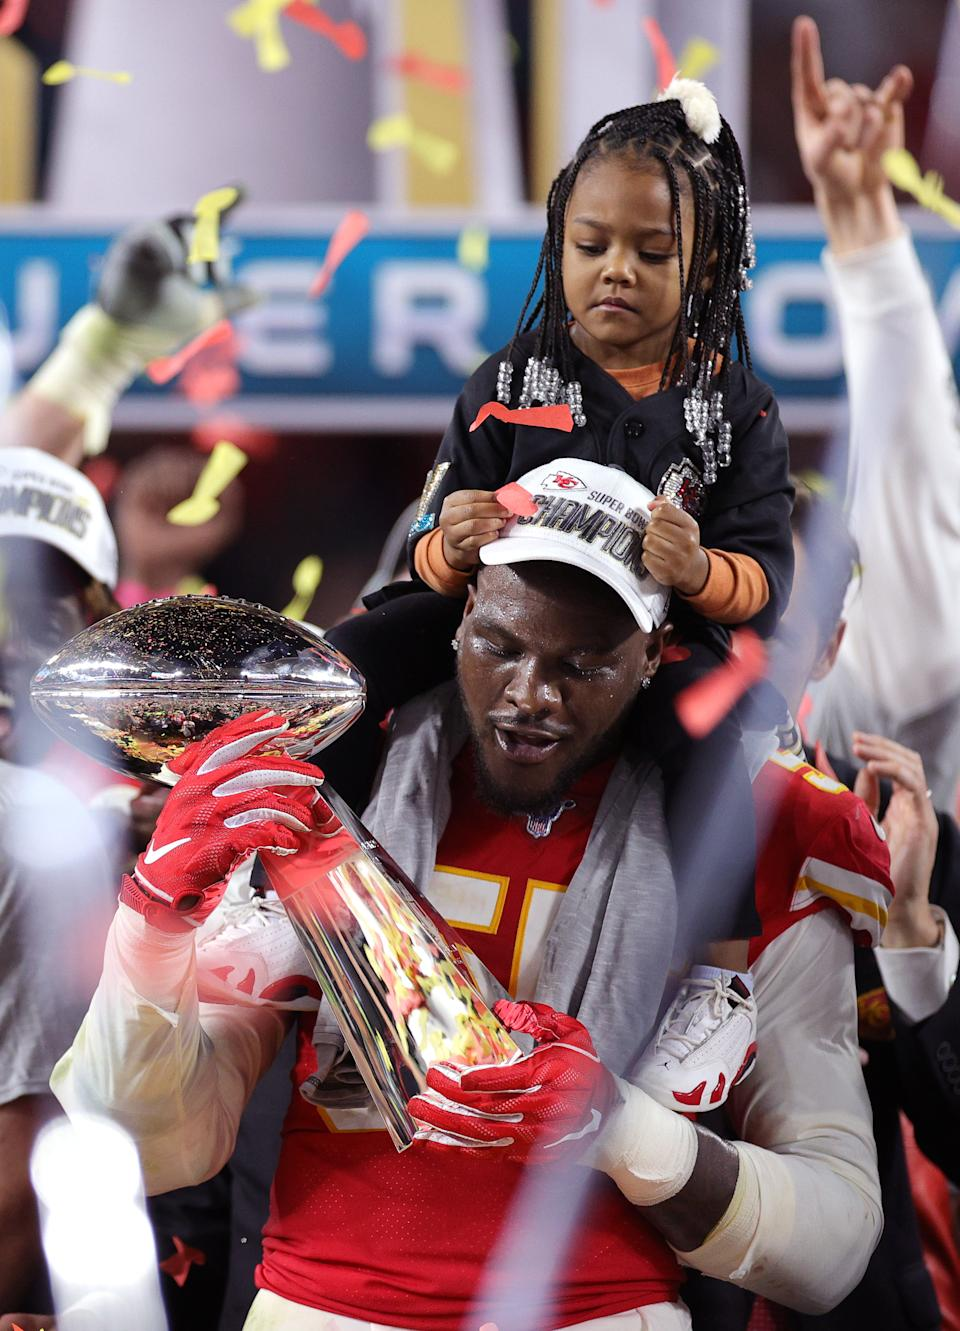 MIAMI, FLORIDA - FEBRUARY 02: Frank Clark #55 of the Kansas City Chiefs holds the the Vince Lombardi trophy after defeating the San Francisco 49ers 31-20 in Super Bowl LIV at Hard Rock Stadium on February 02, 2020 in Miami, Florida. (Photo by Rob Carr/Getty Images)